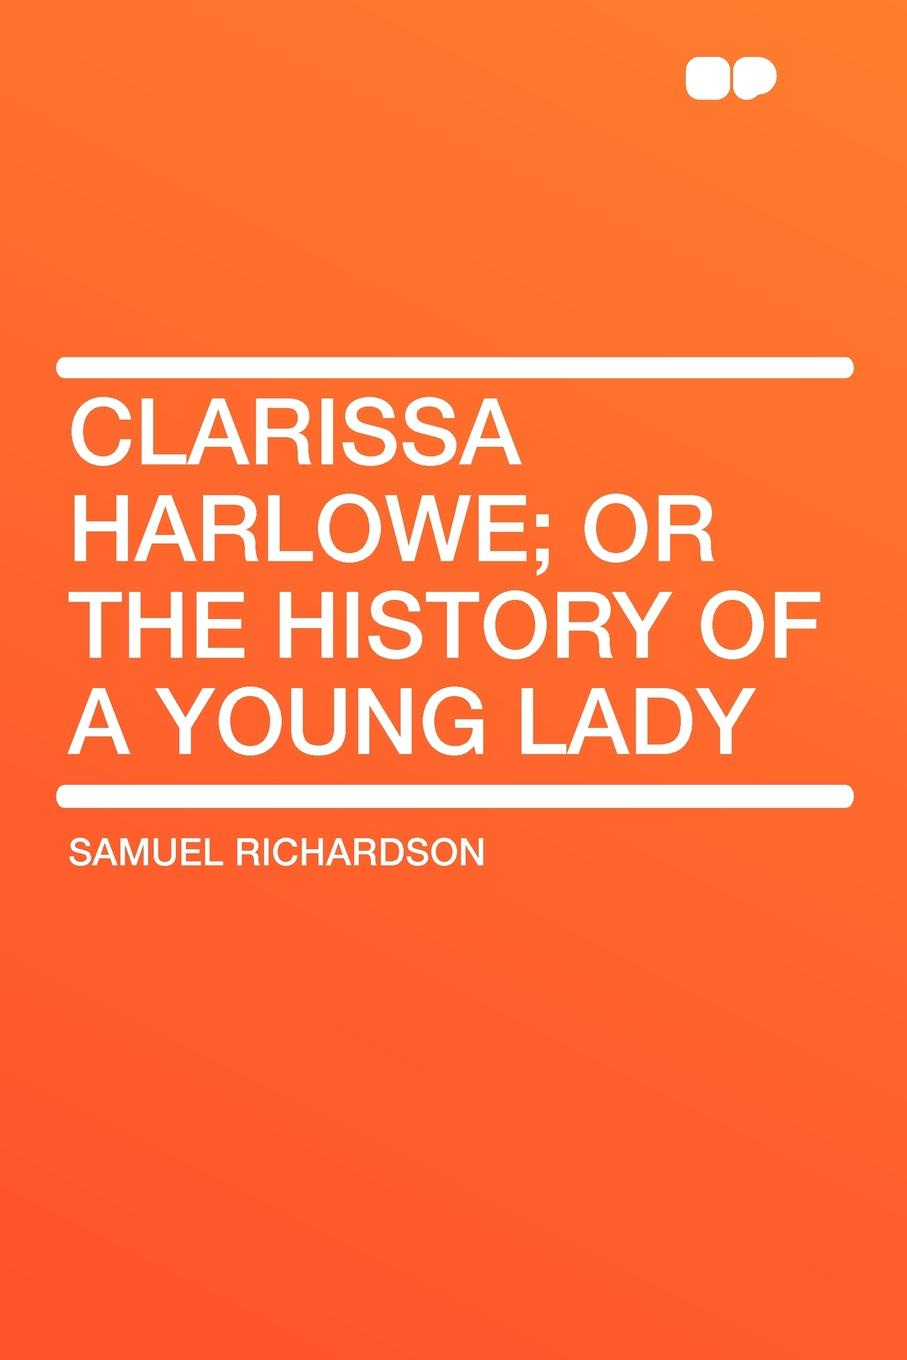 Samuel Richardson Clarissa Harlowe; or the history of a young lady цена